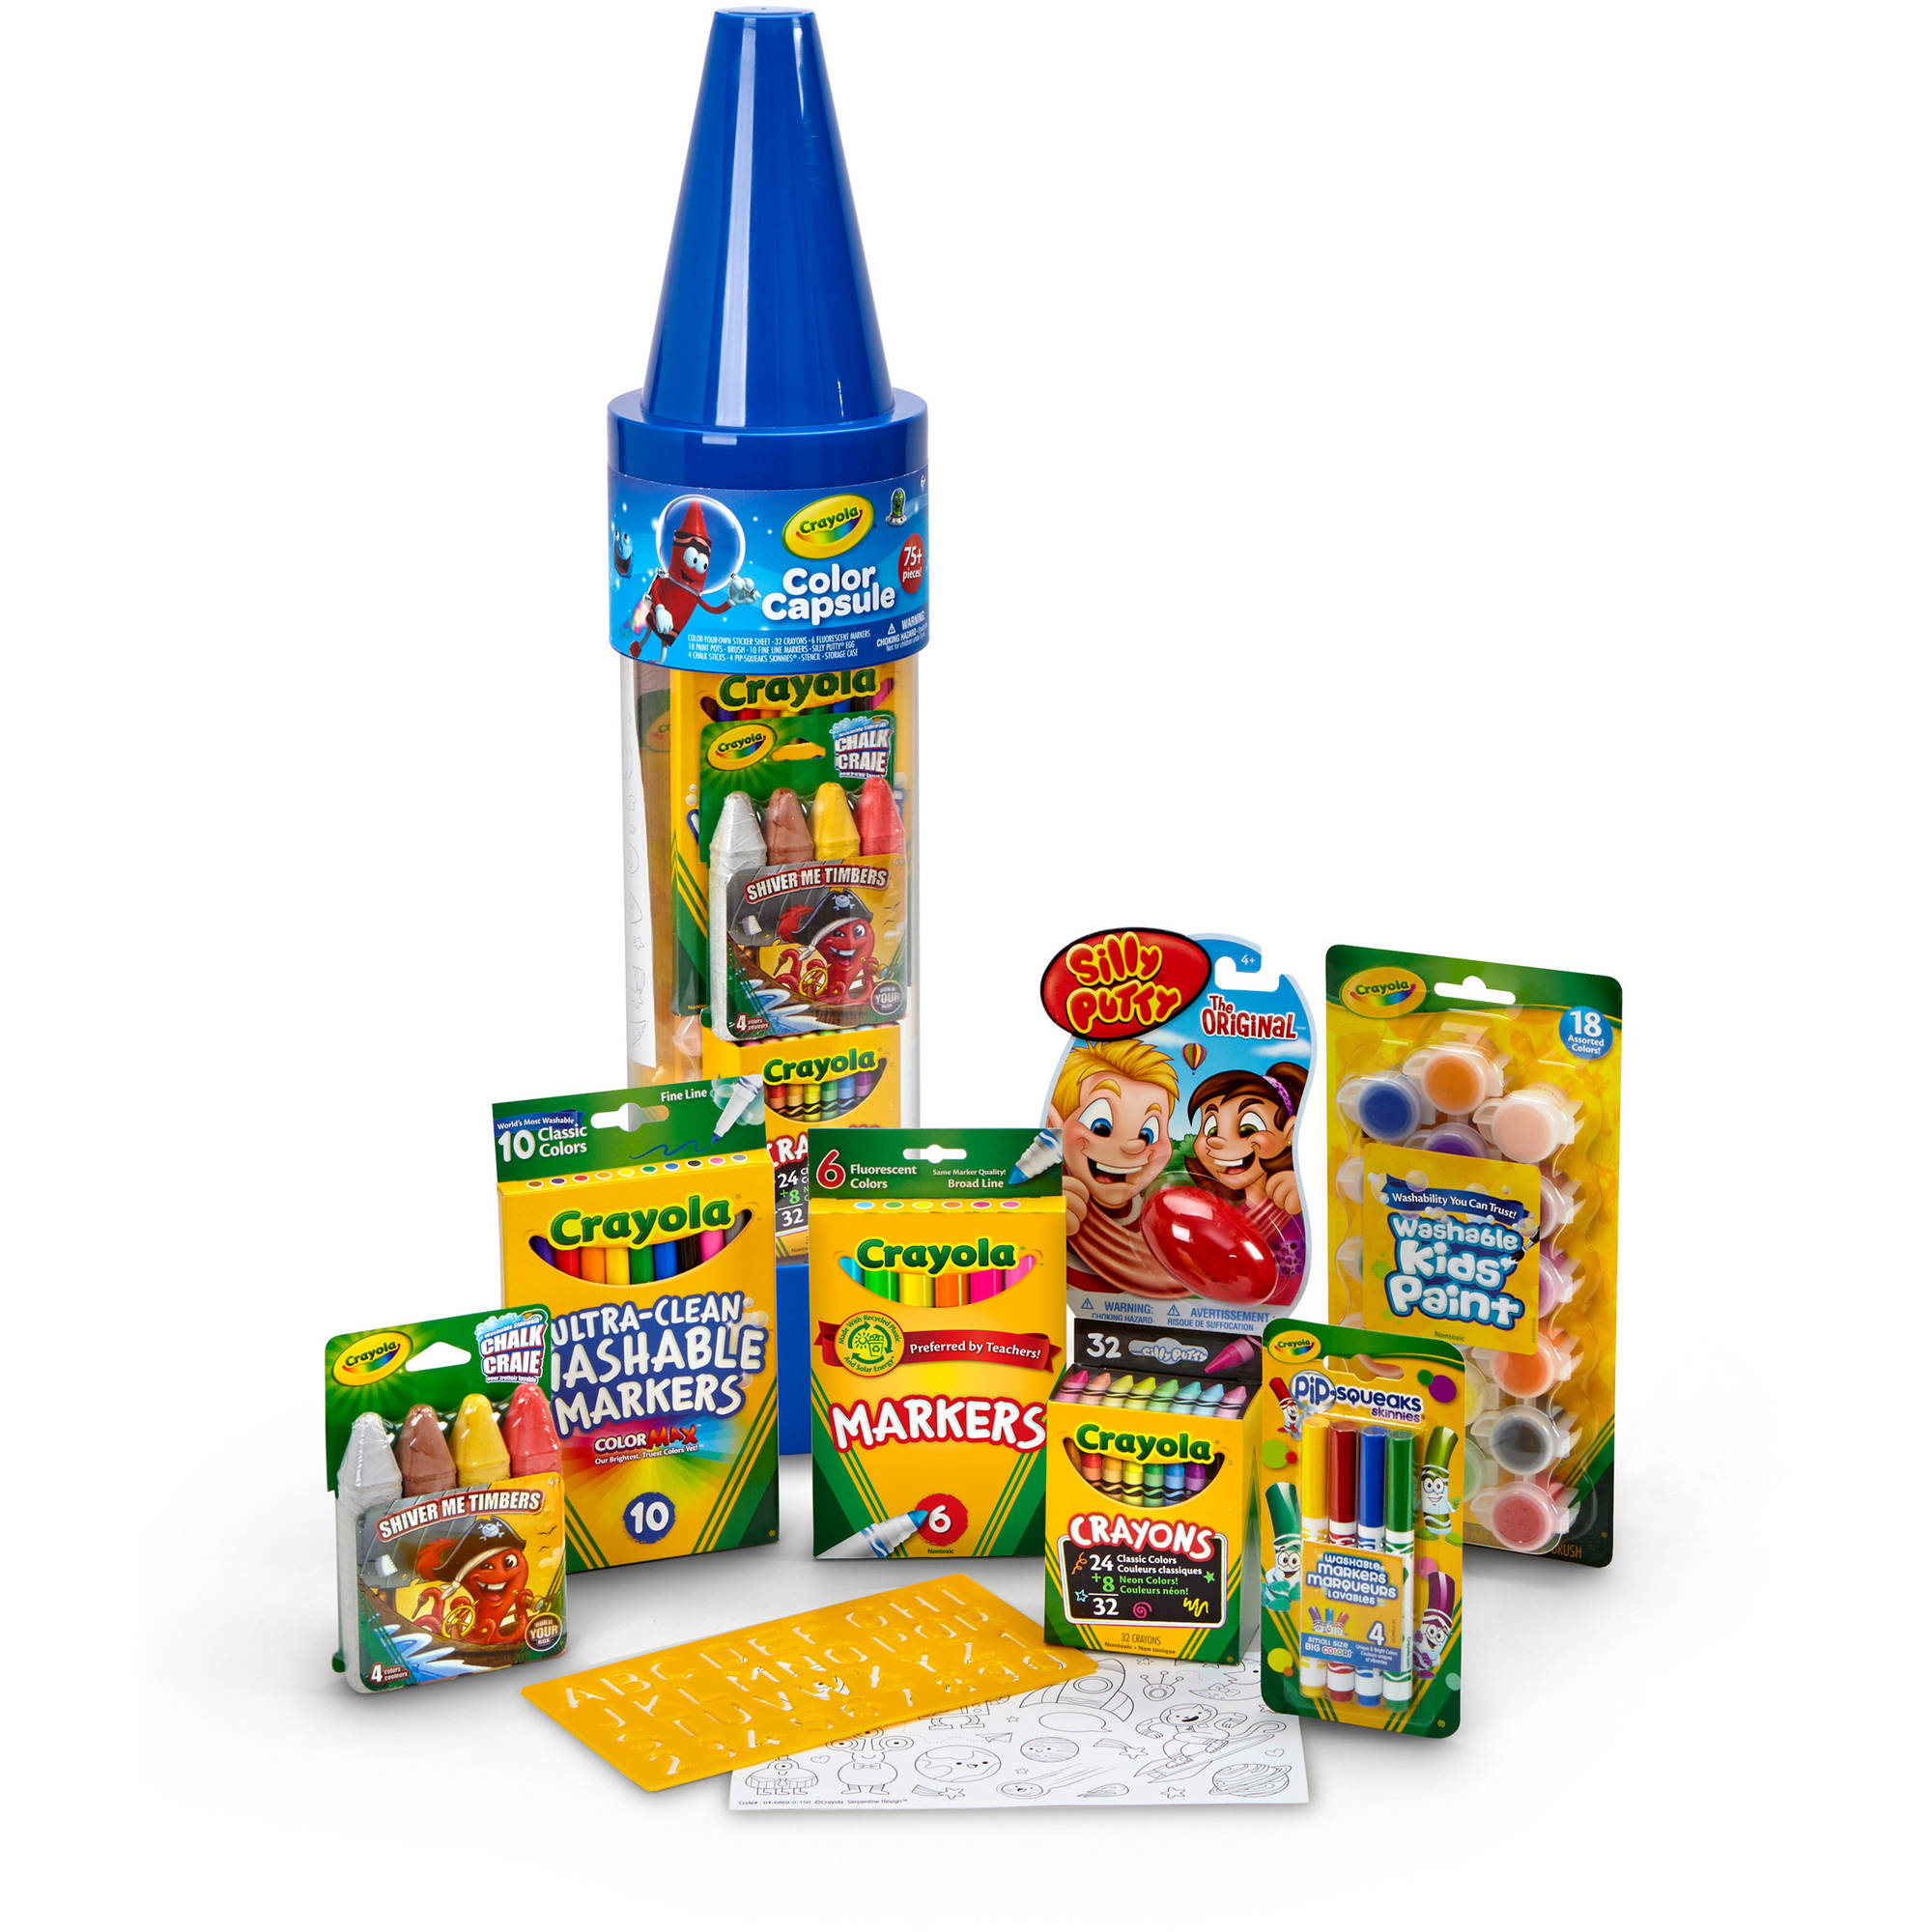 Crayola 78-Piece Color Capsule, Blue